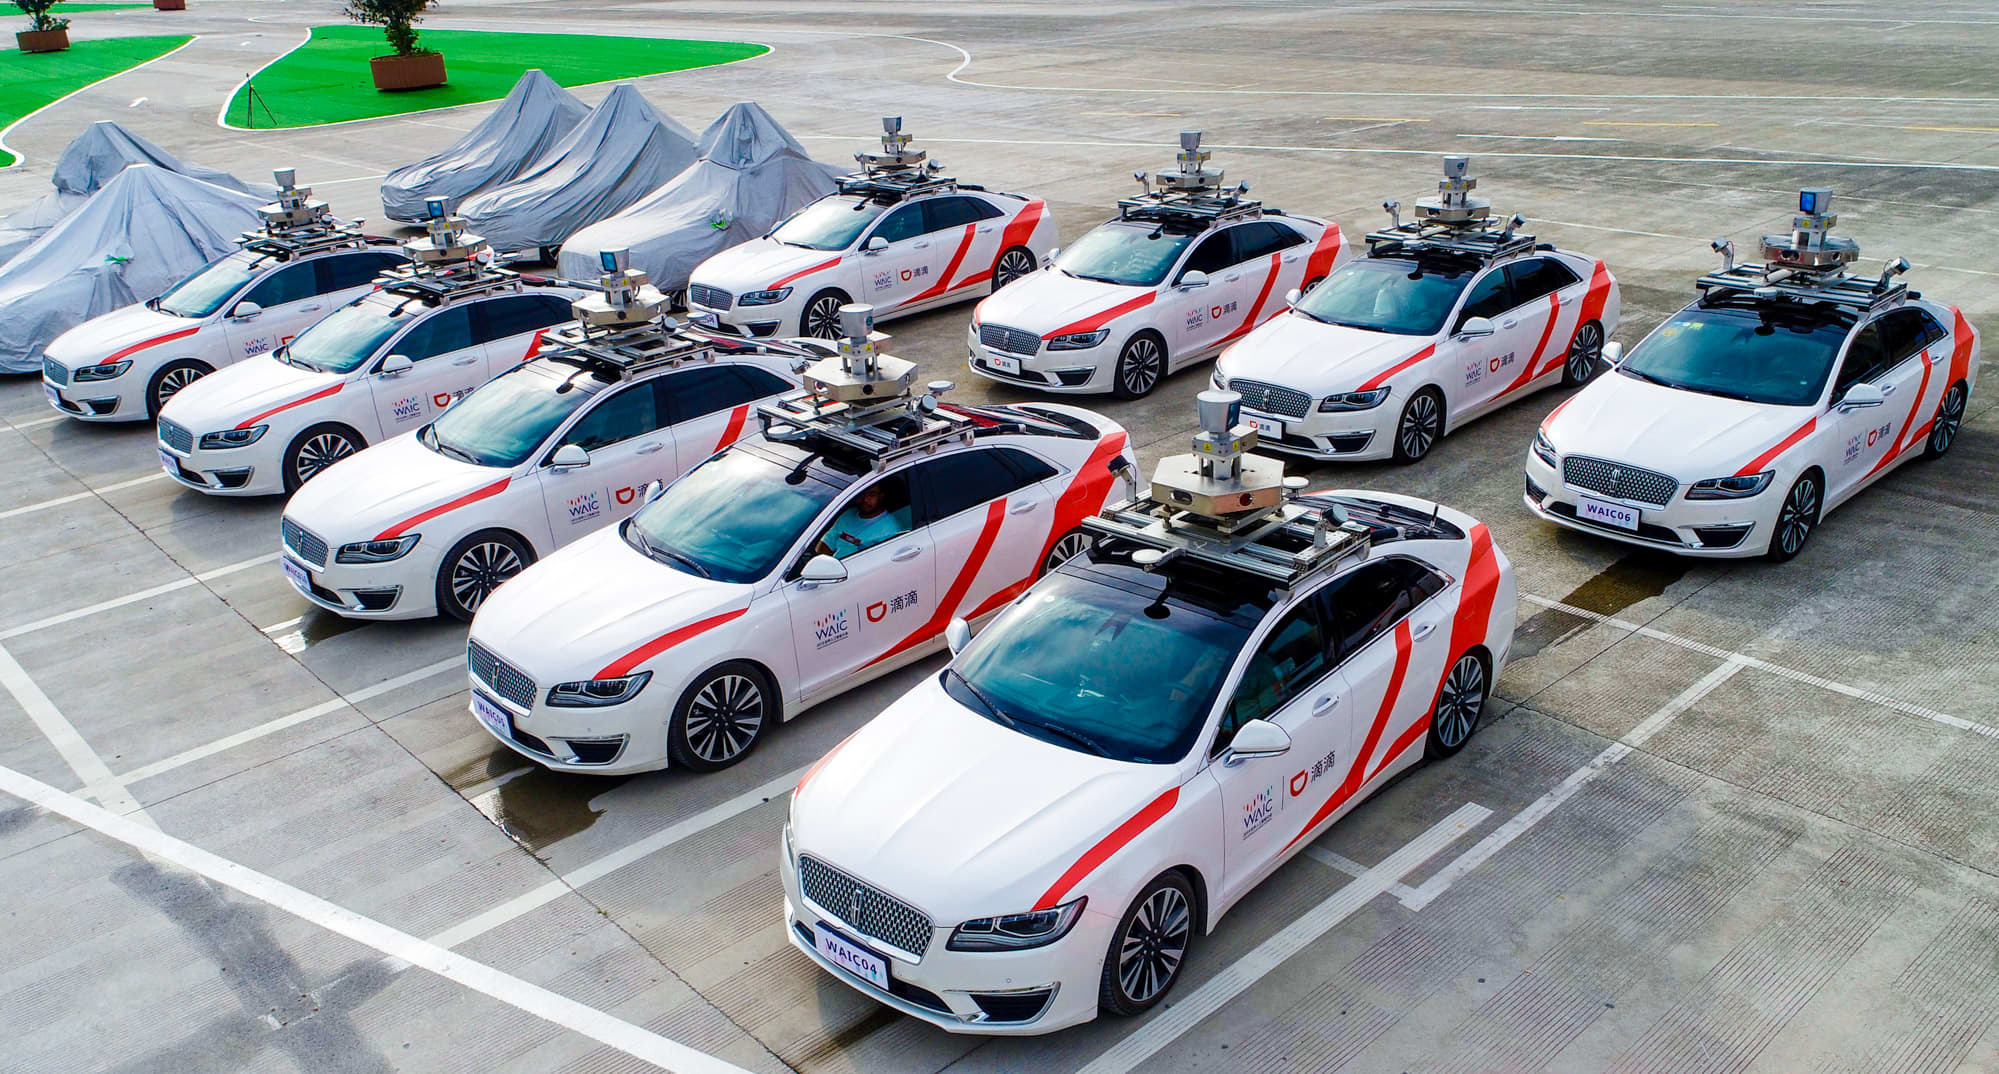 SoftBank leads $500 million investment in Chinese ride-hailing firm Didi's self-driving car unit